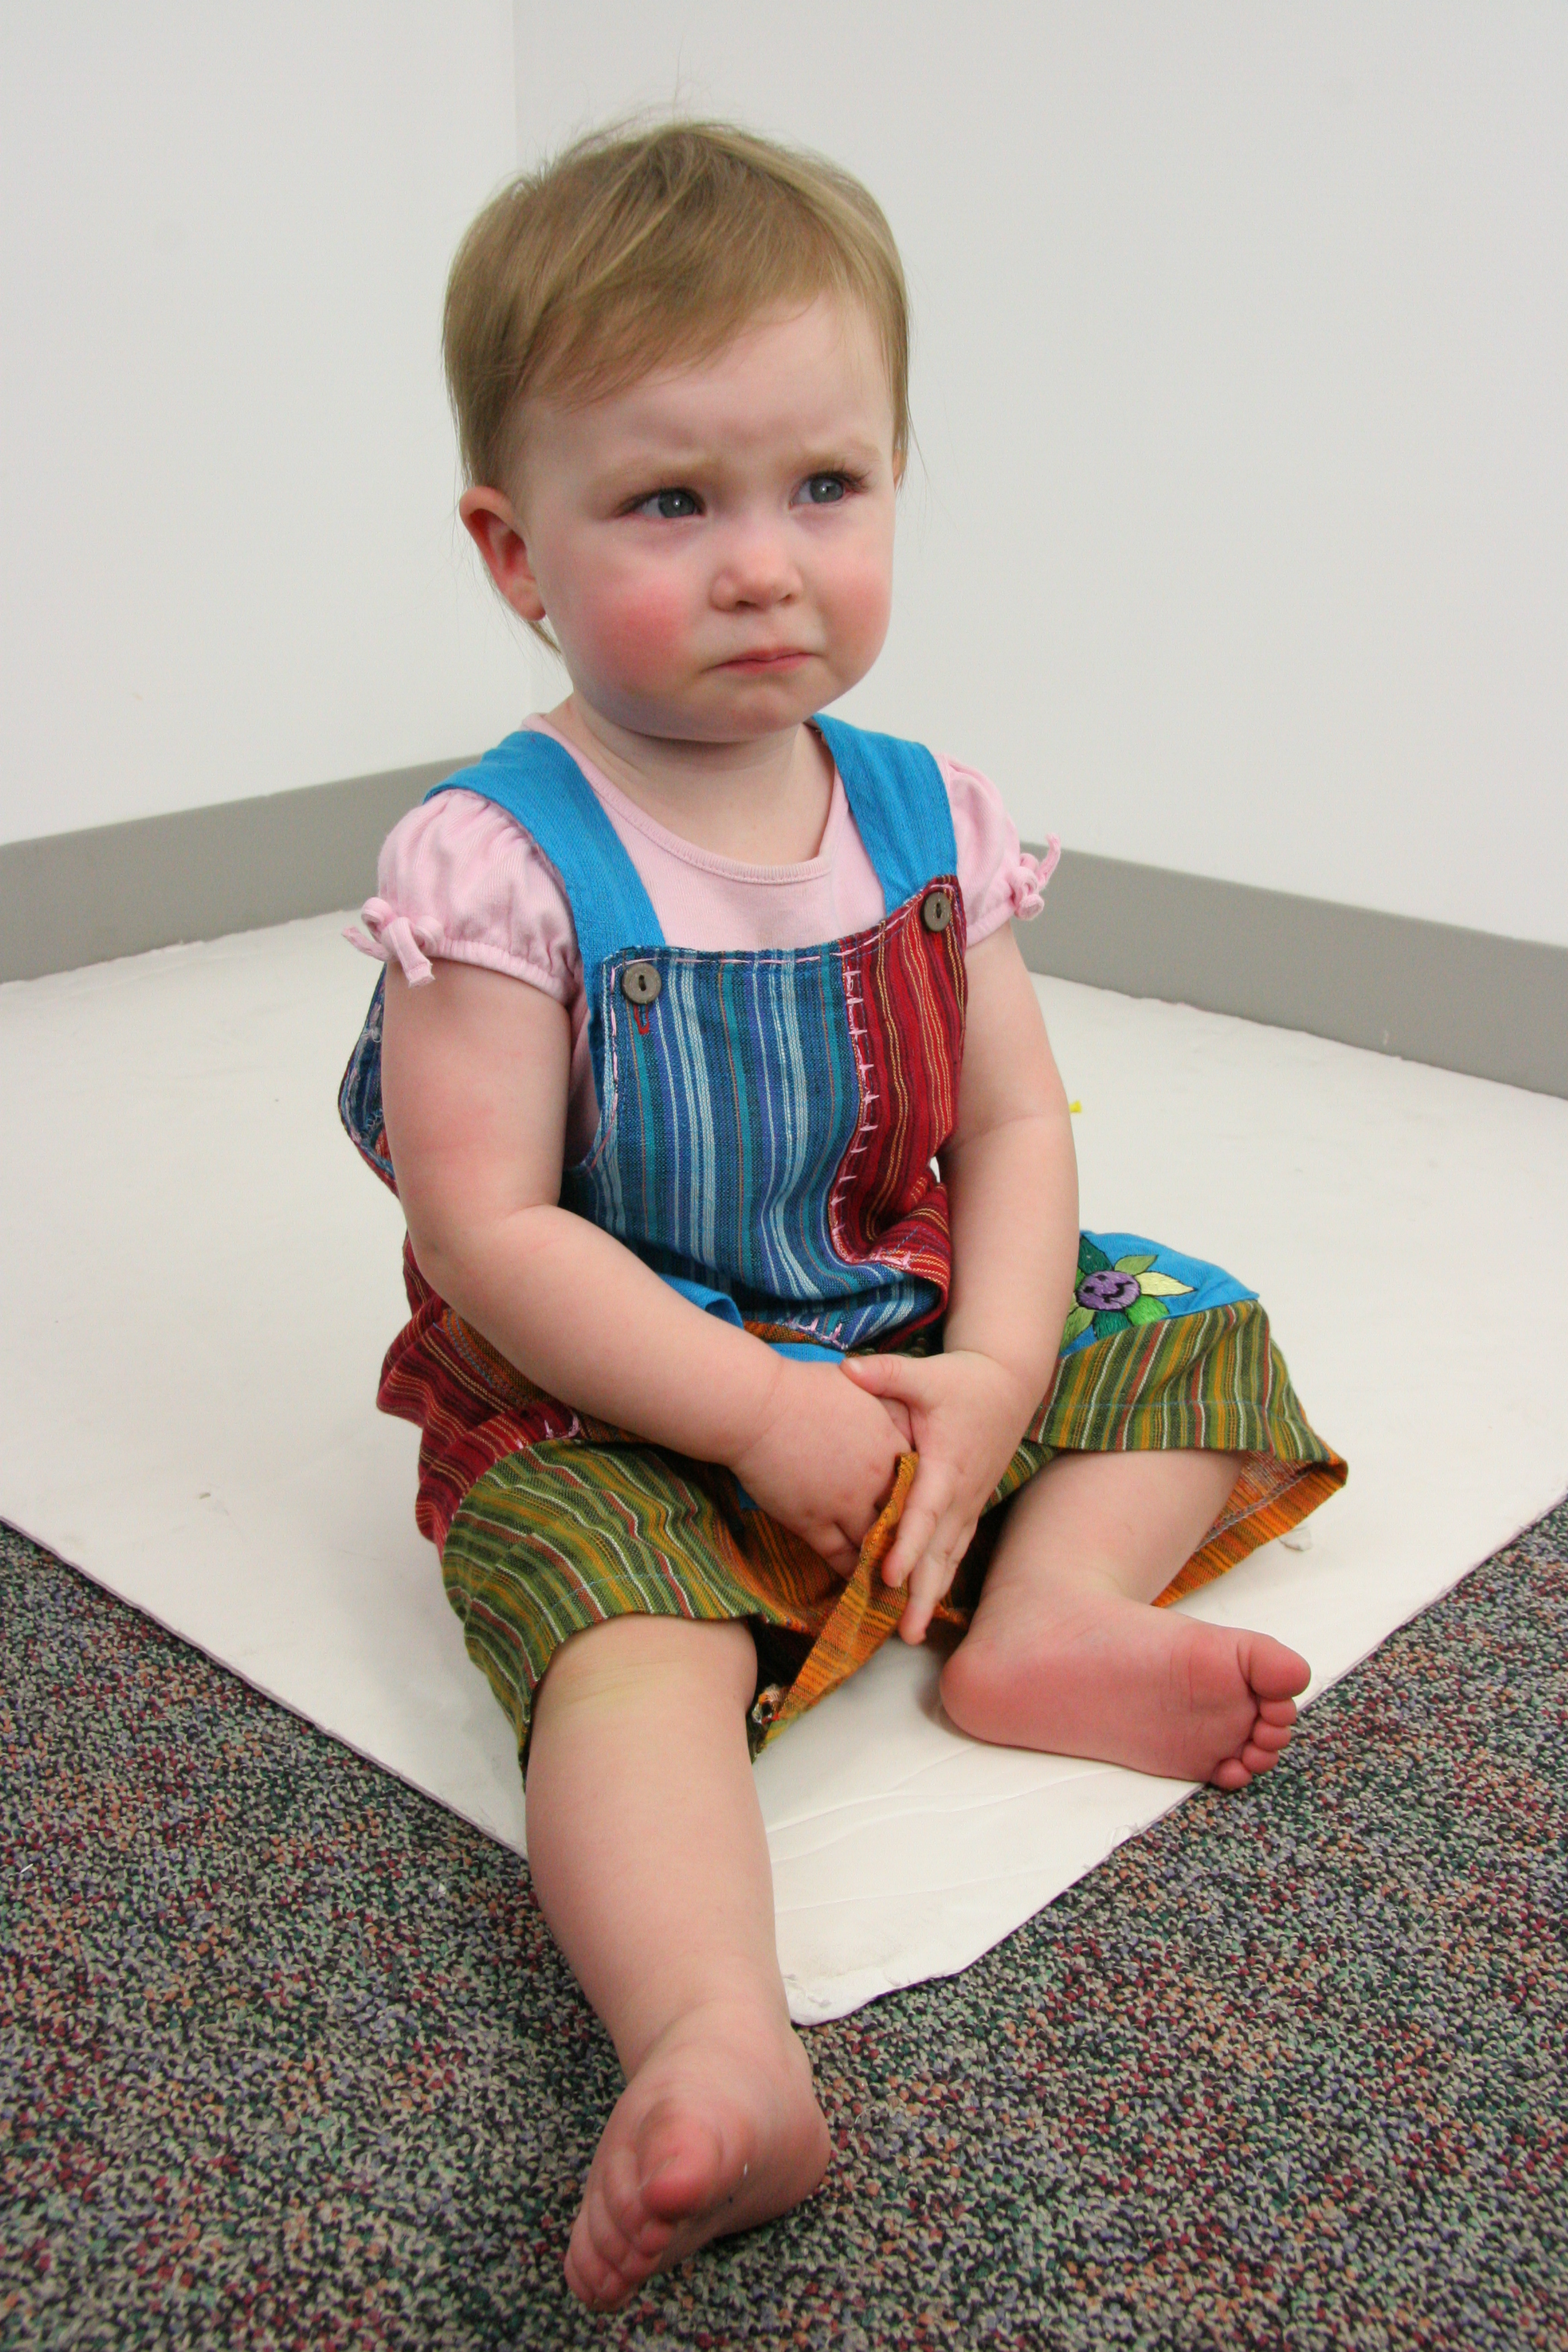 Crying helps children offload feelings